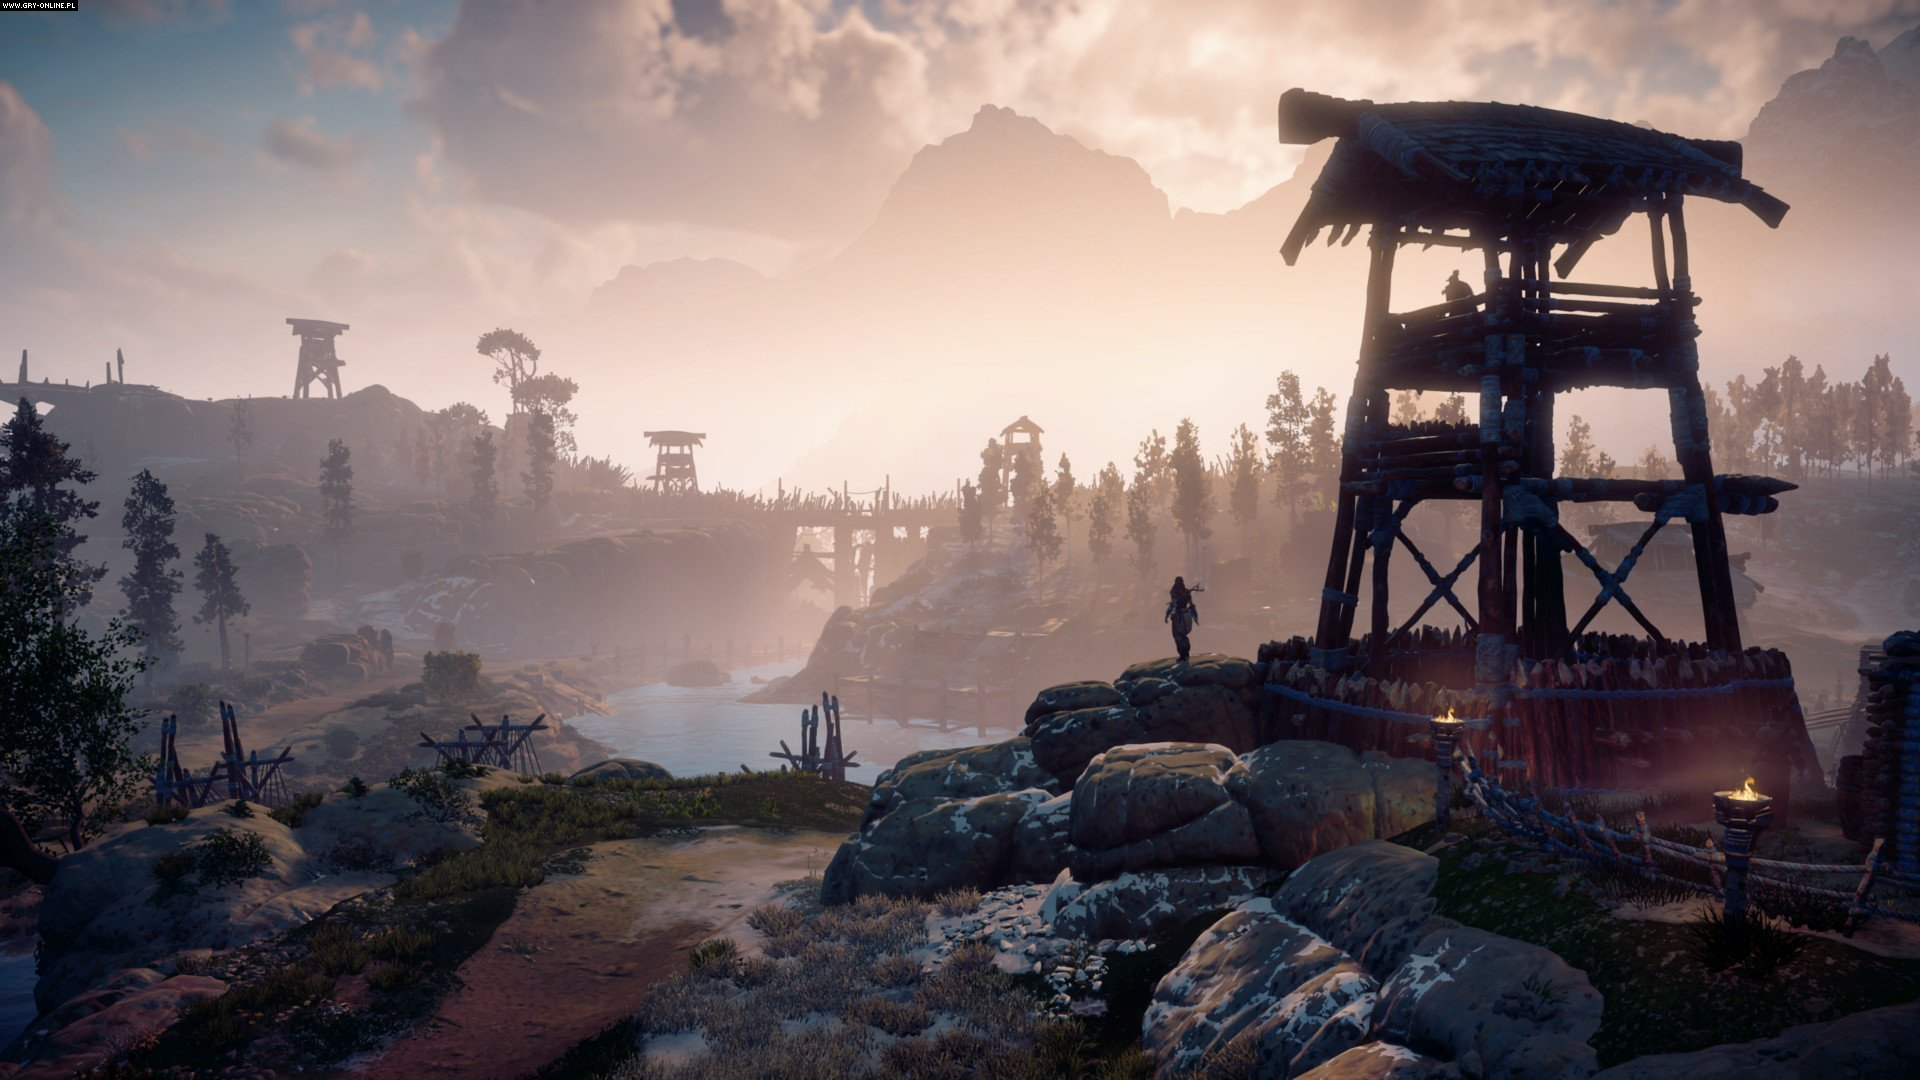 Horizon Zero Dawn PS4 Games Image 84/131, Guerrilla Games, Sony Interactive Entertainment